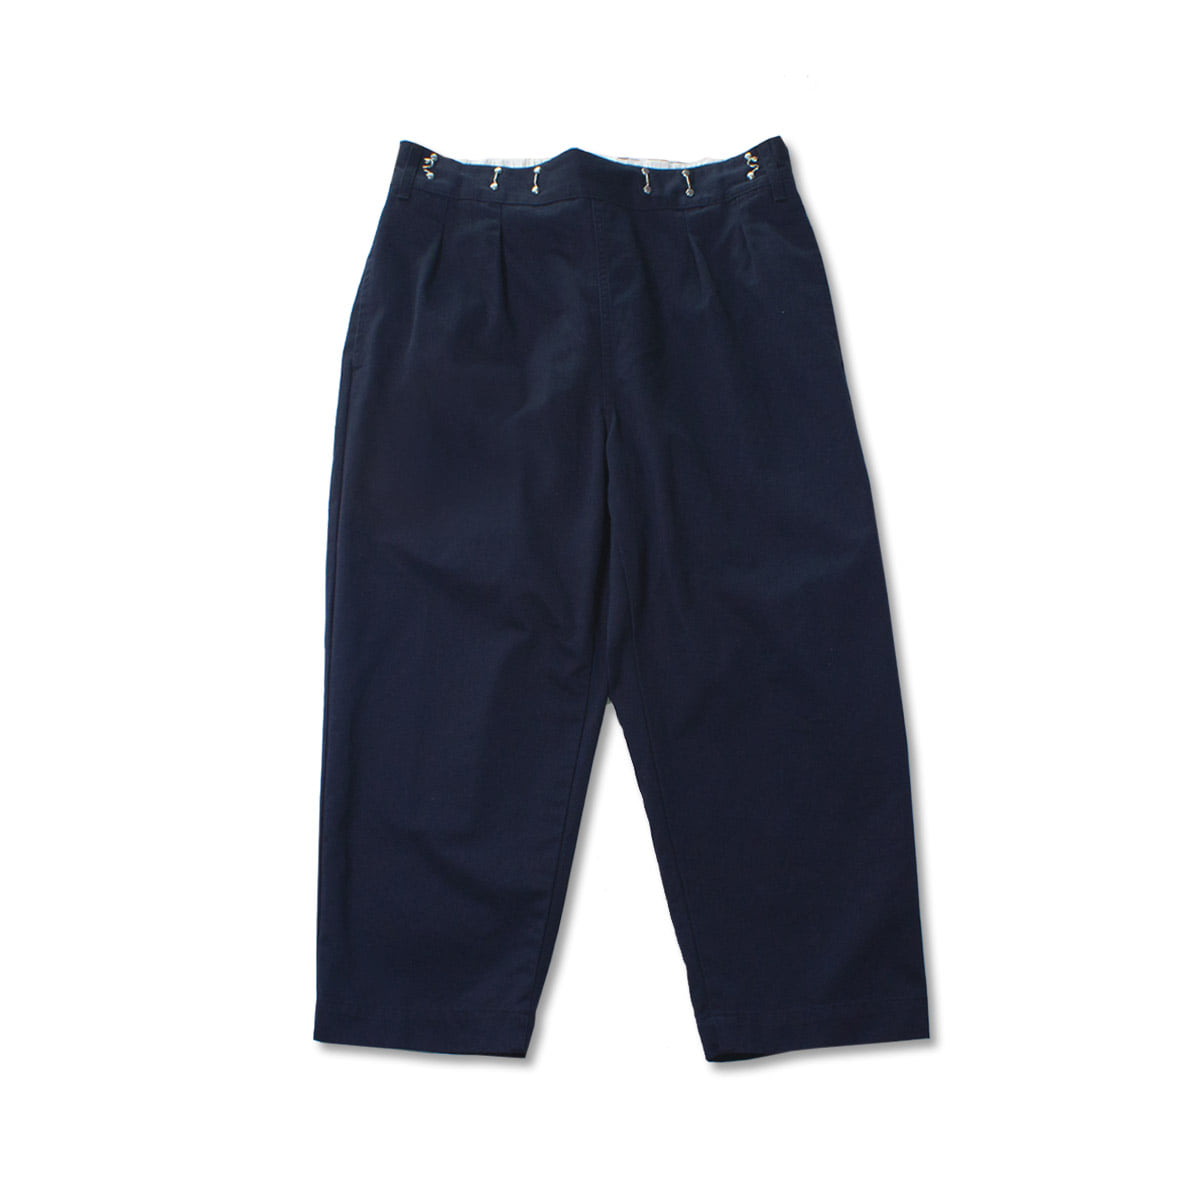 [ORDINARY FITS] BOTTLES  PANTS CHINO 'NAVY'